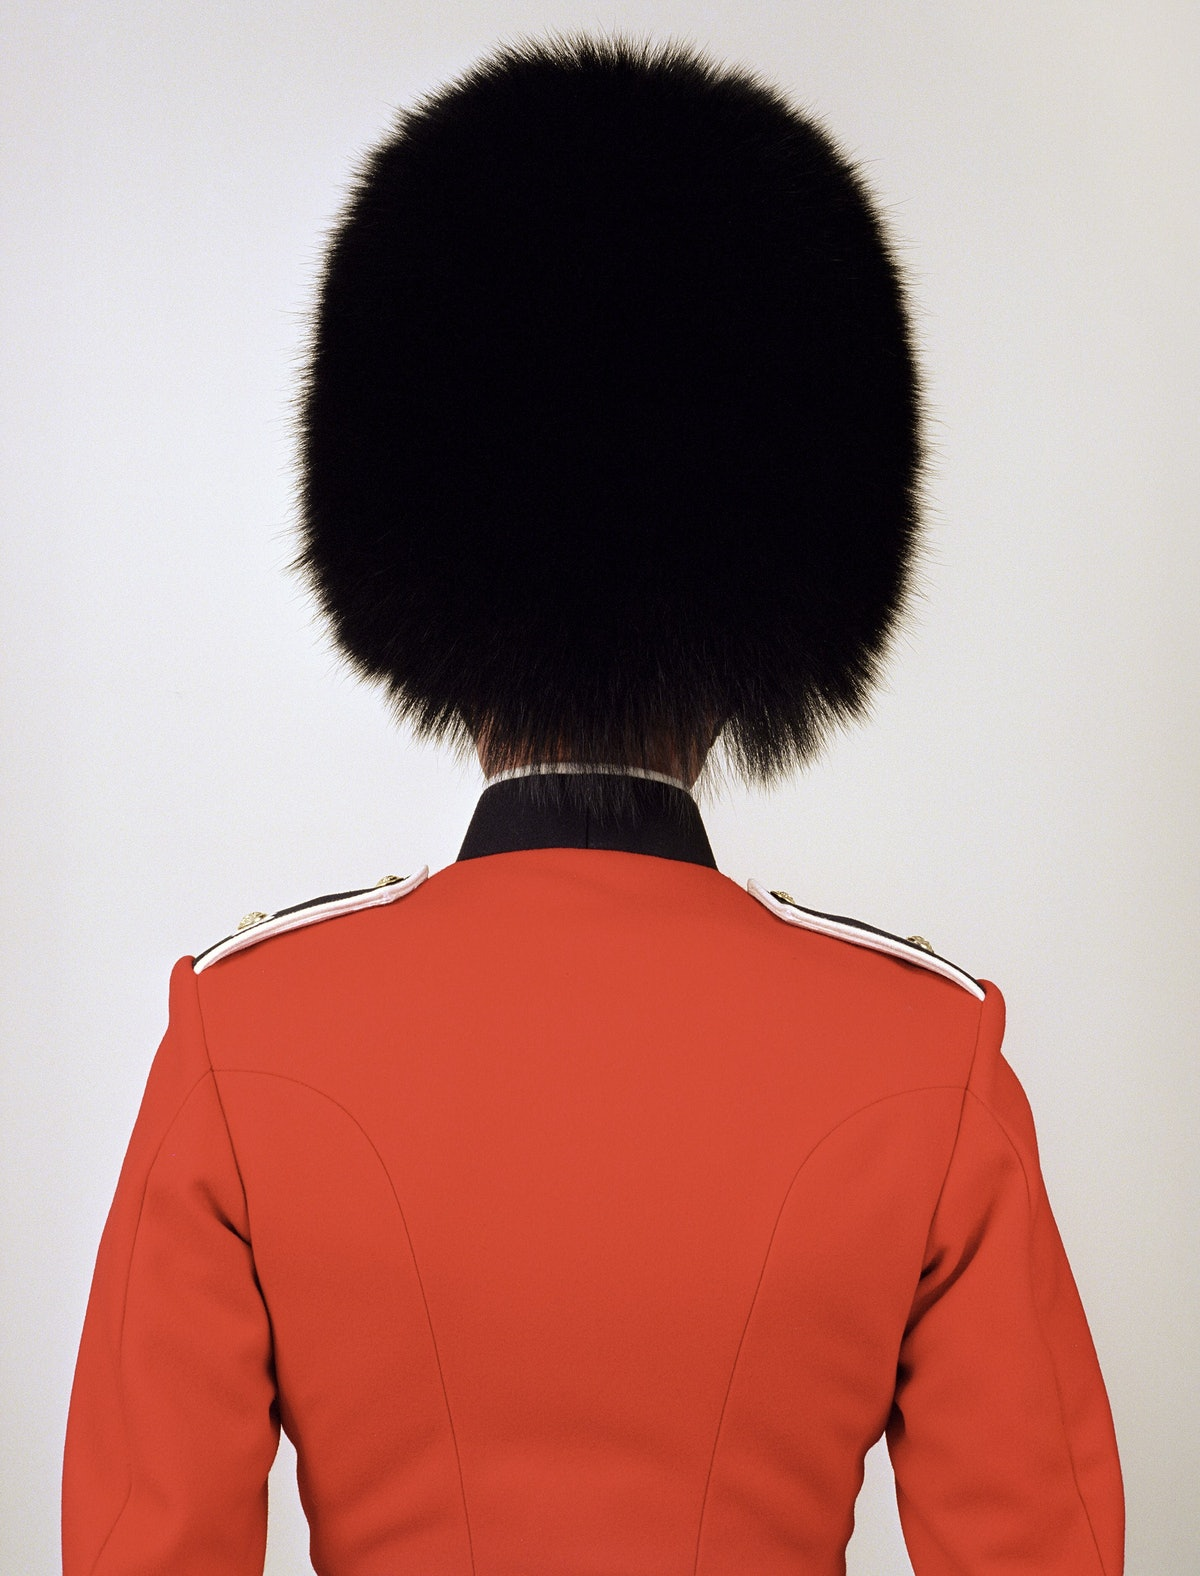 Scot guard, UK, from the EMPIRE series, 2004-2007 - Photo by Charles FrÇger.jpg